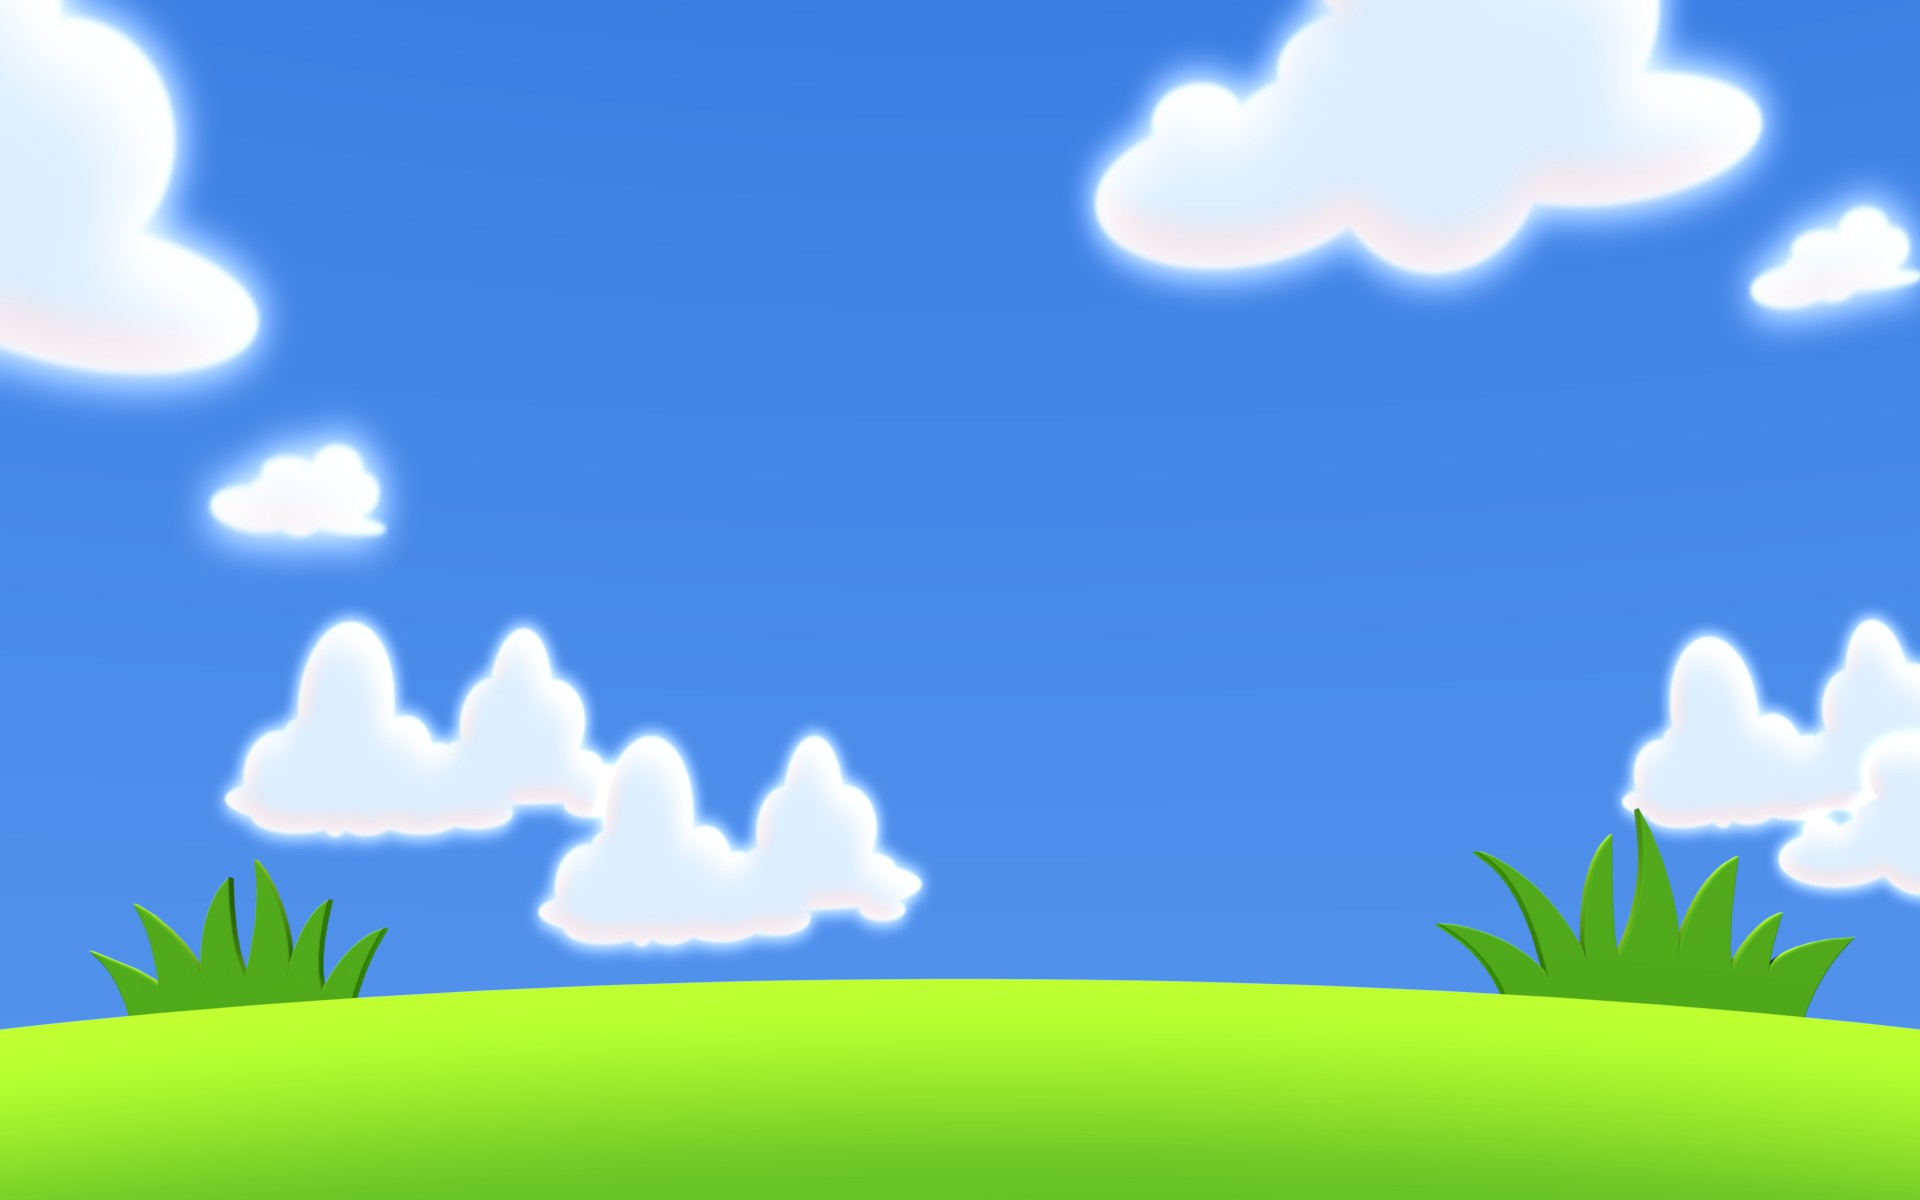 Free Sky Cliparts, Download Free Clip Art, Free Clip Art on.